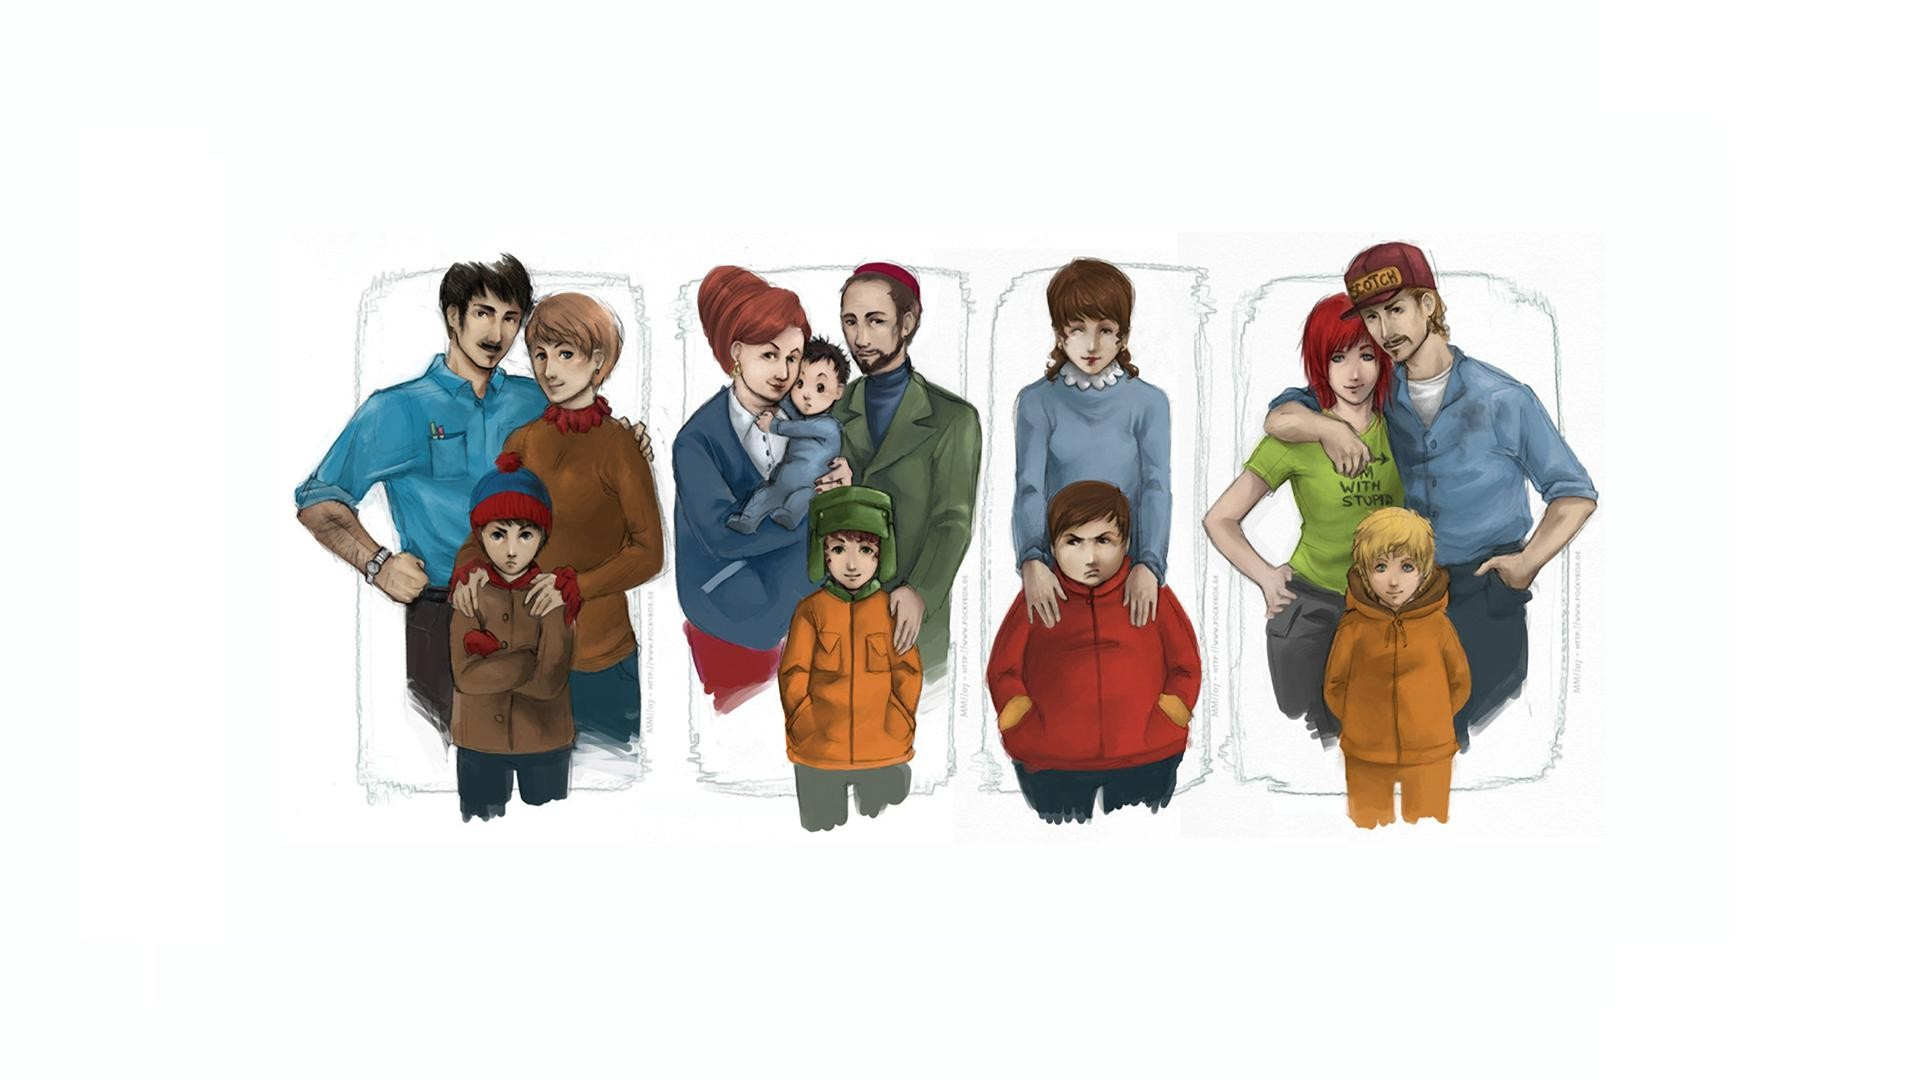 General 1920x1080 South Park Kyle Broflovski Stan Marsh Kenny McCormick Eric Cartman